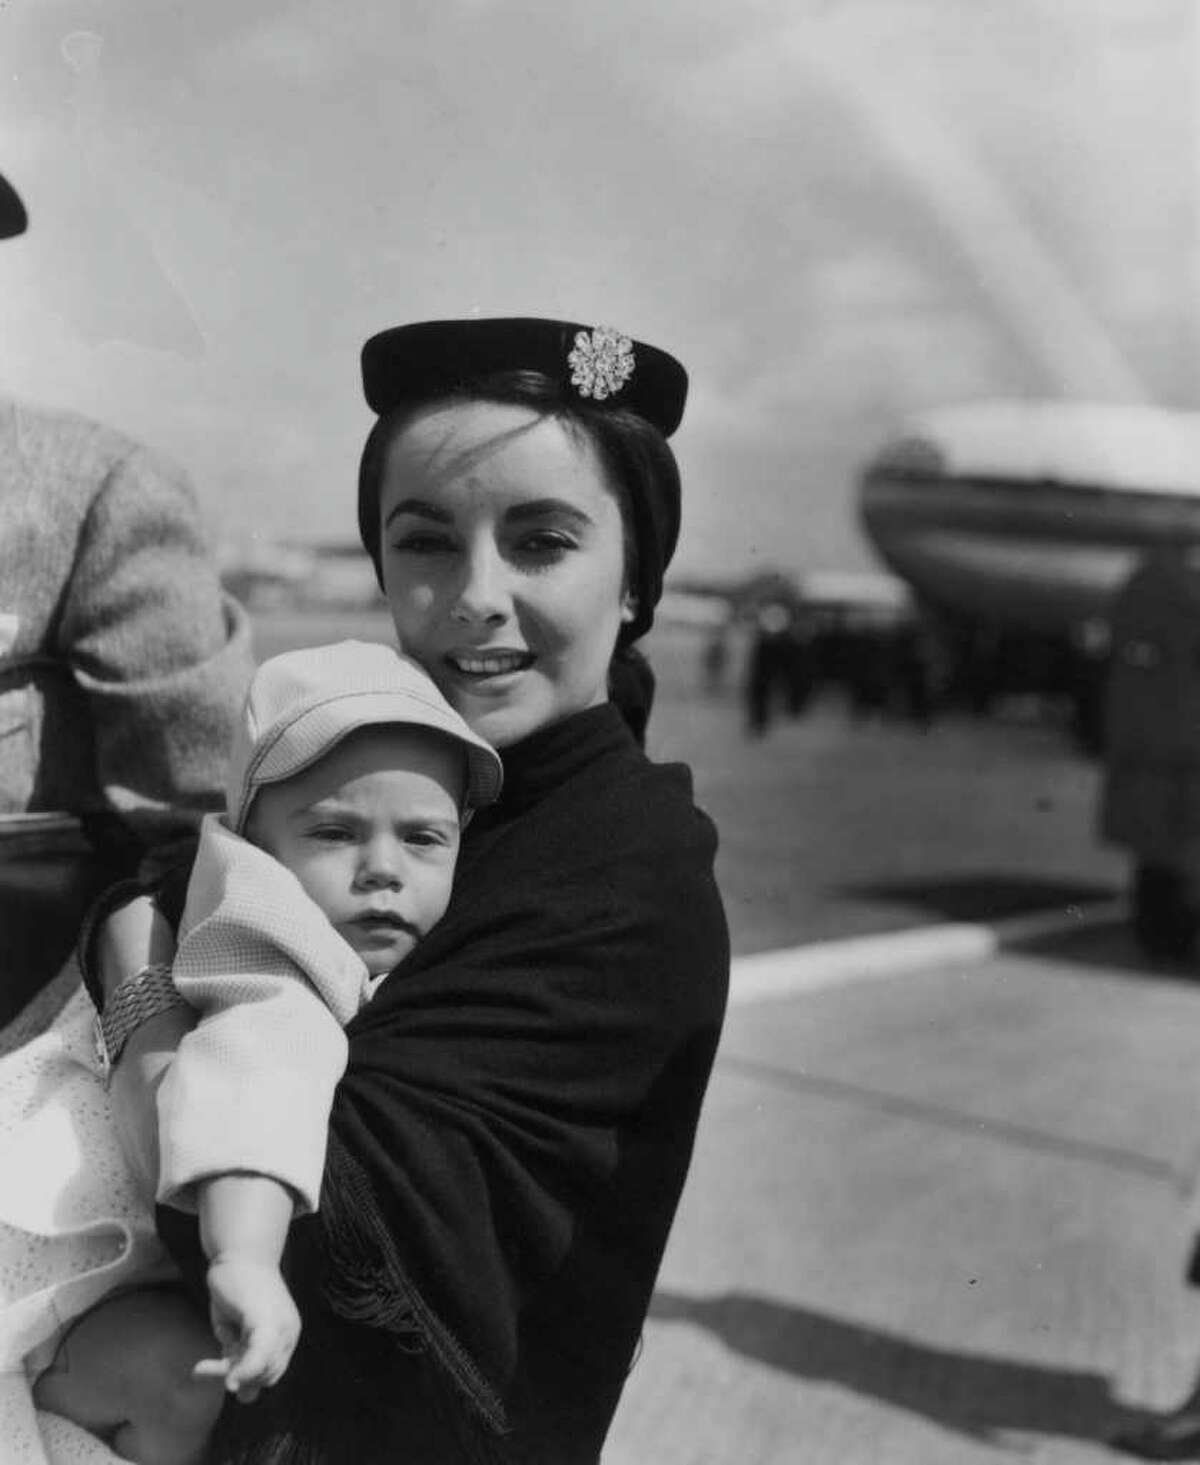 Elizabeth Taylor carries son Michael Howard, aged 7 months, at London Airport, circa 1955.